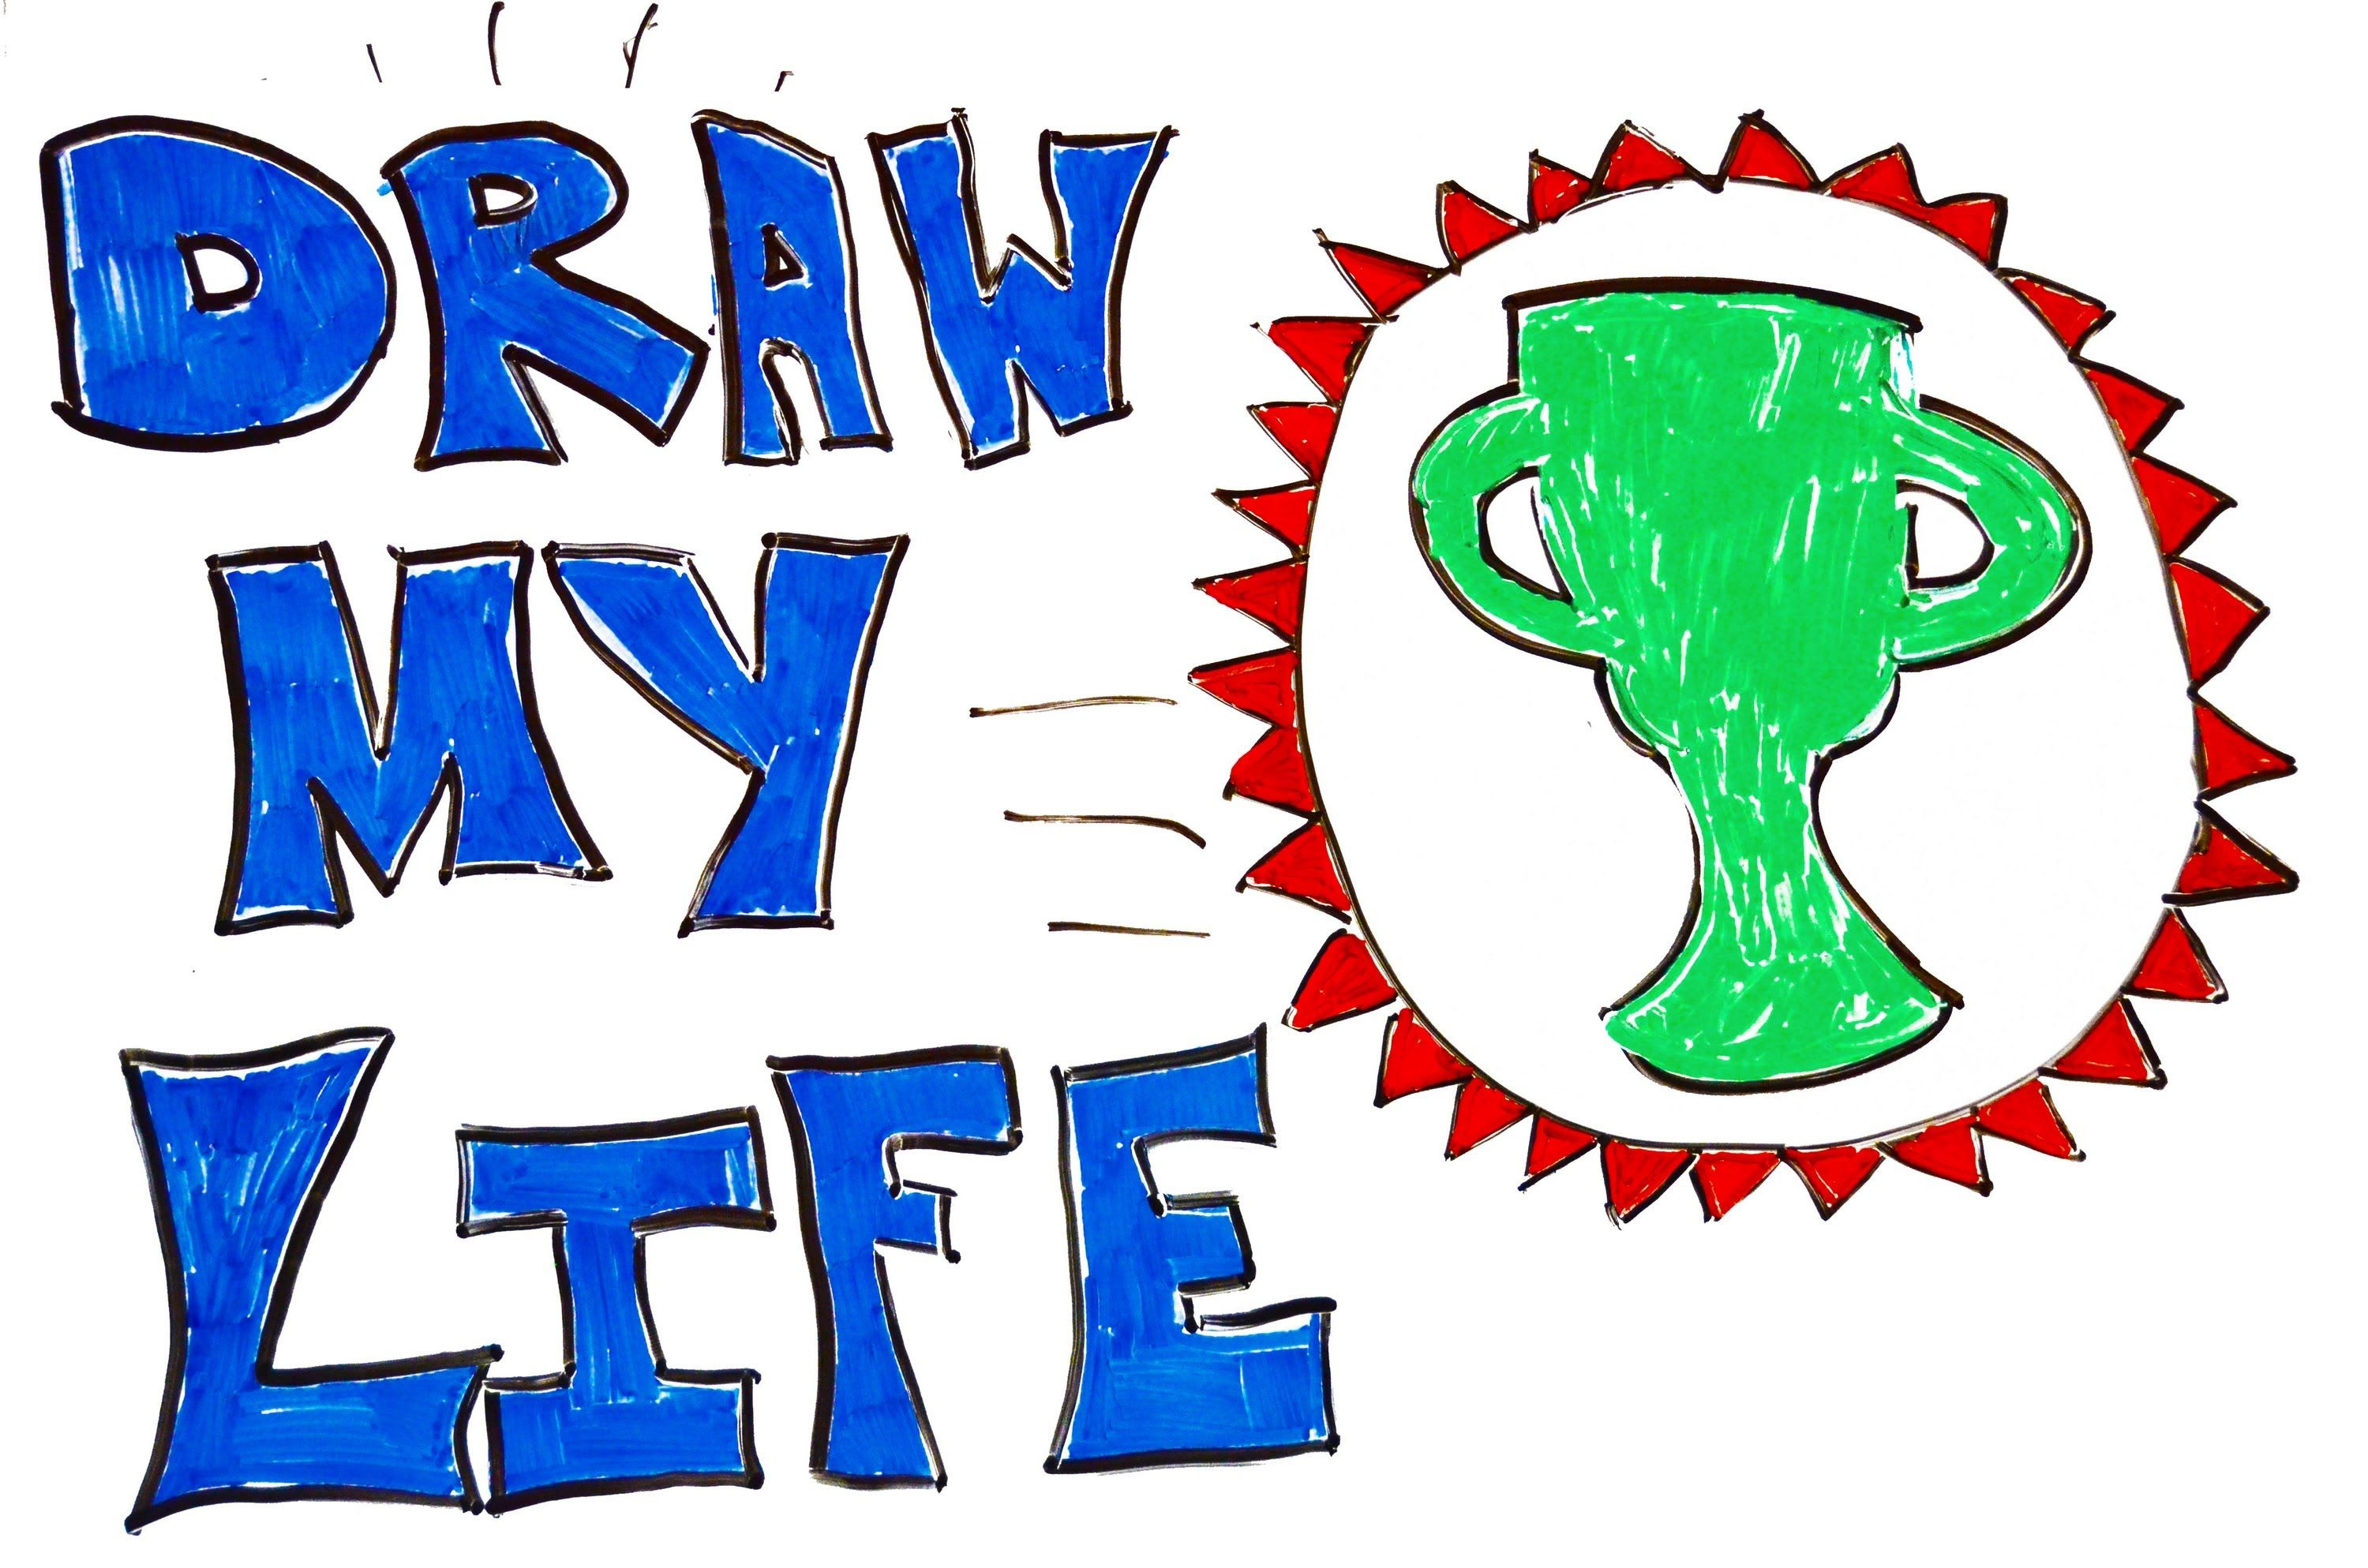 Draw My Life Game Theory Matpat And You Proof That Video Games Can Change Lives Very Inspiring Story Here Game Theory My Life Game Theories